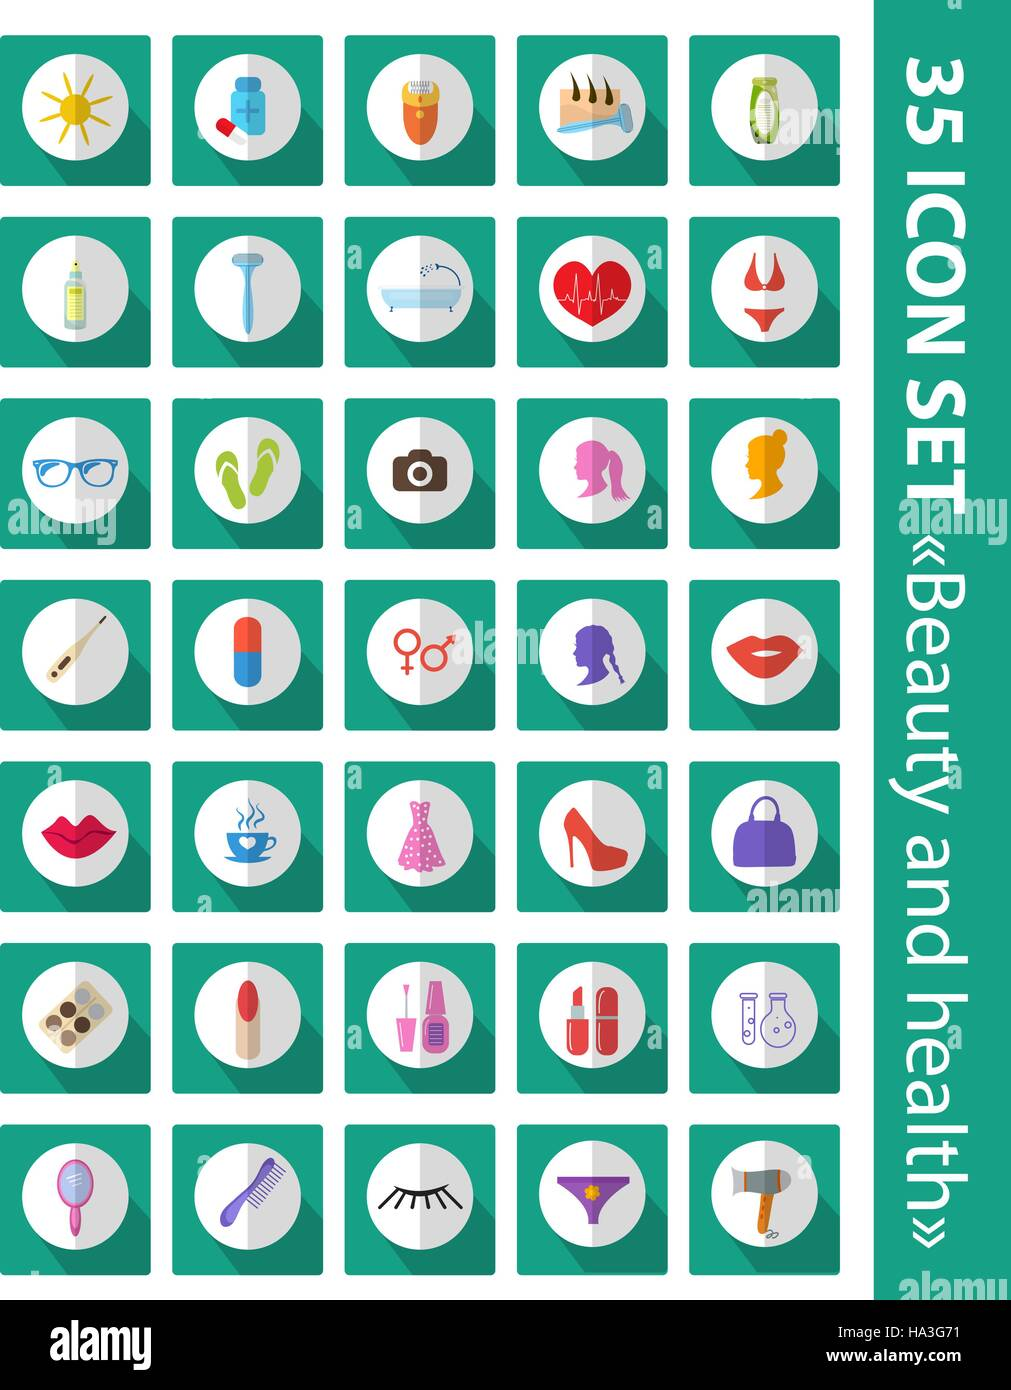 Vector set of flat icons beauty, fashion, health. Cosmetics and body care, 35 icons set. - Stock Image